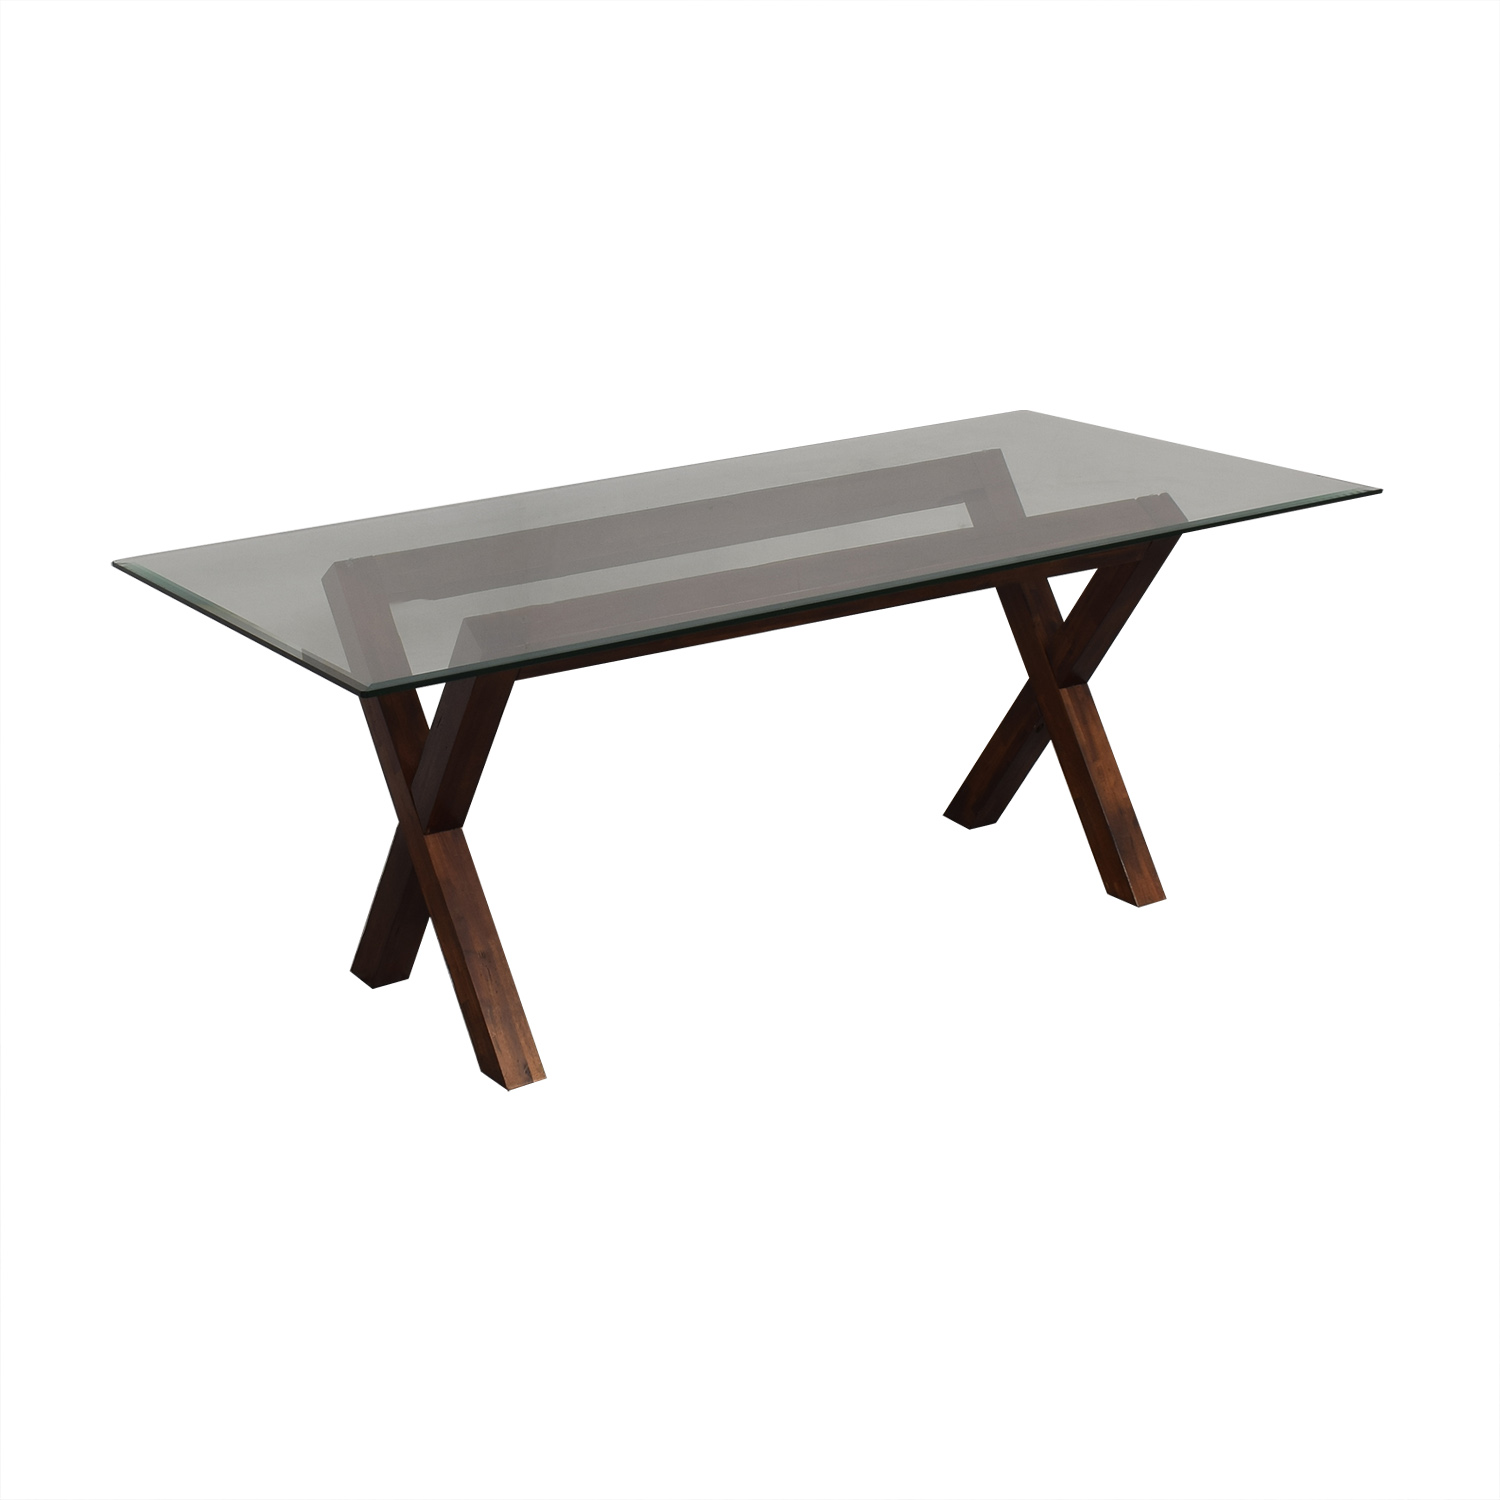 West Elm West Elm Transparent Dining Table ma